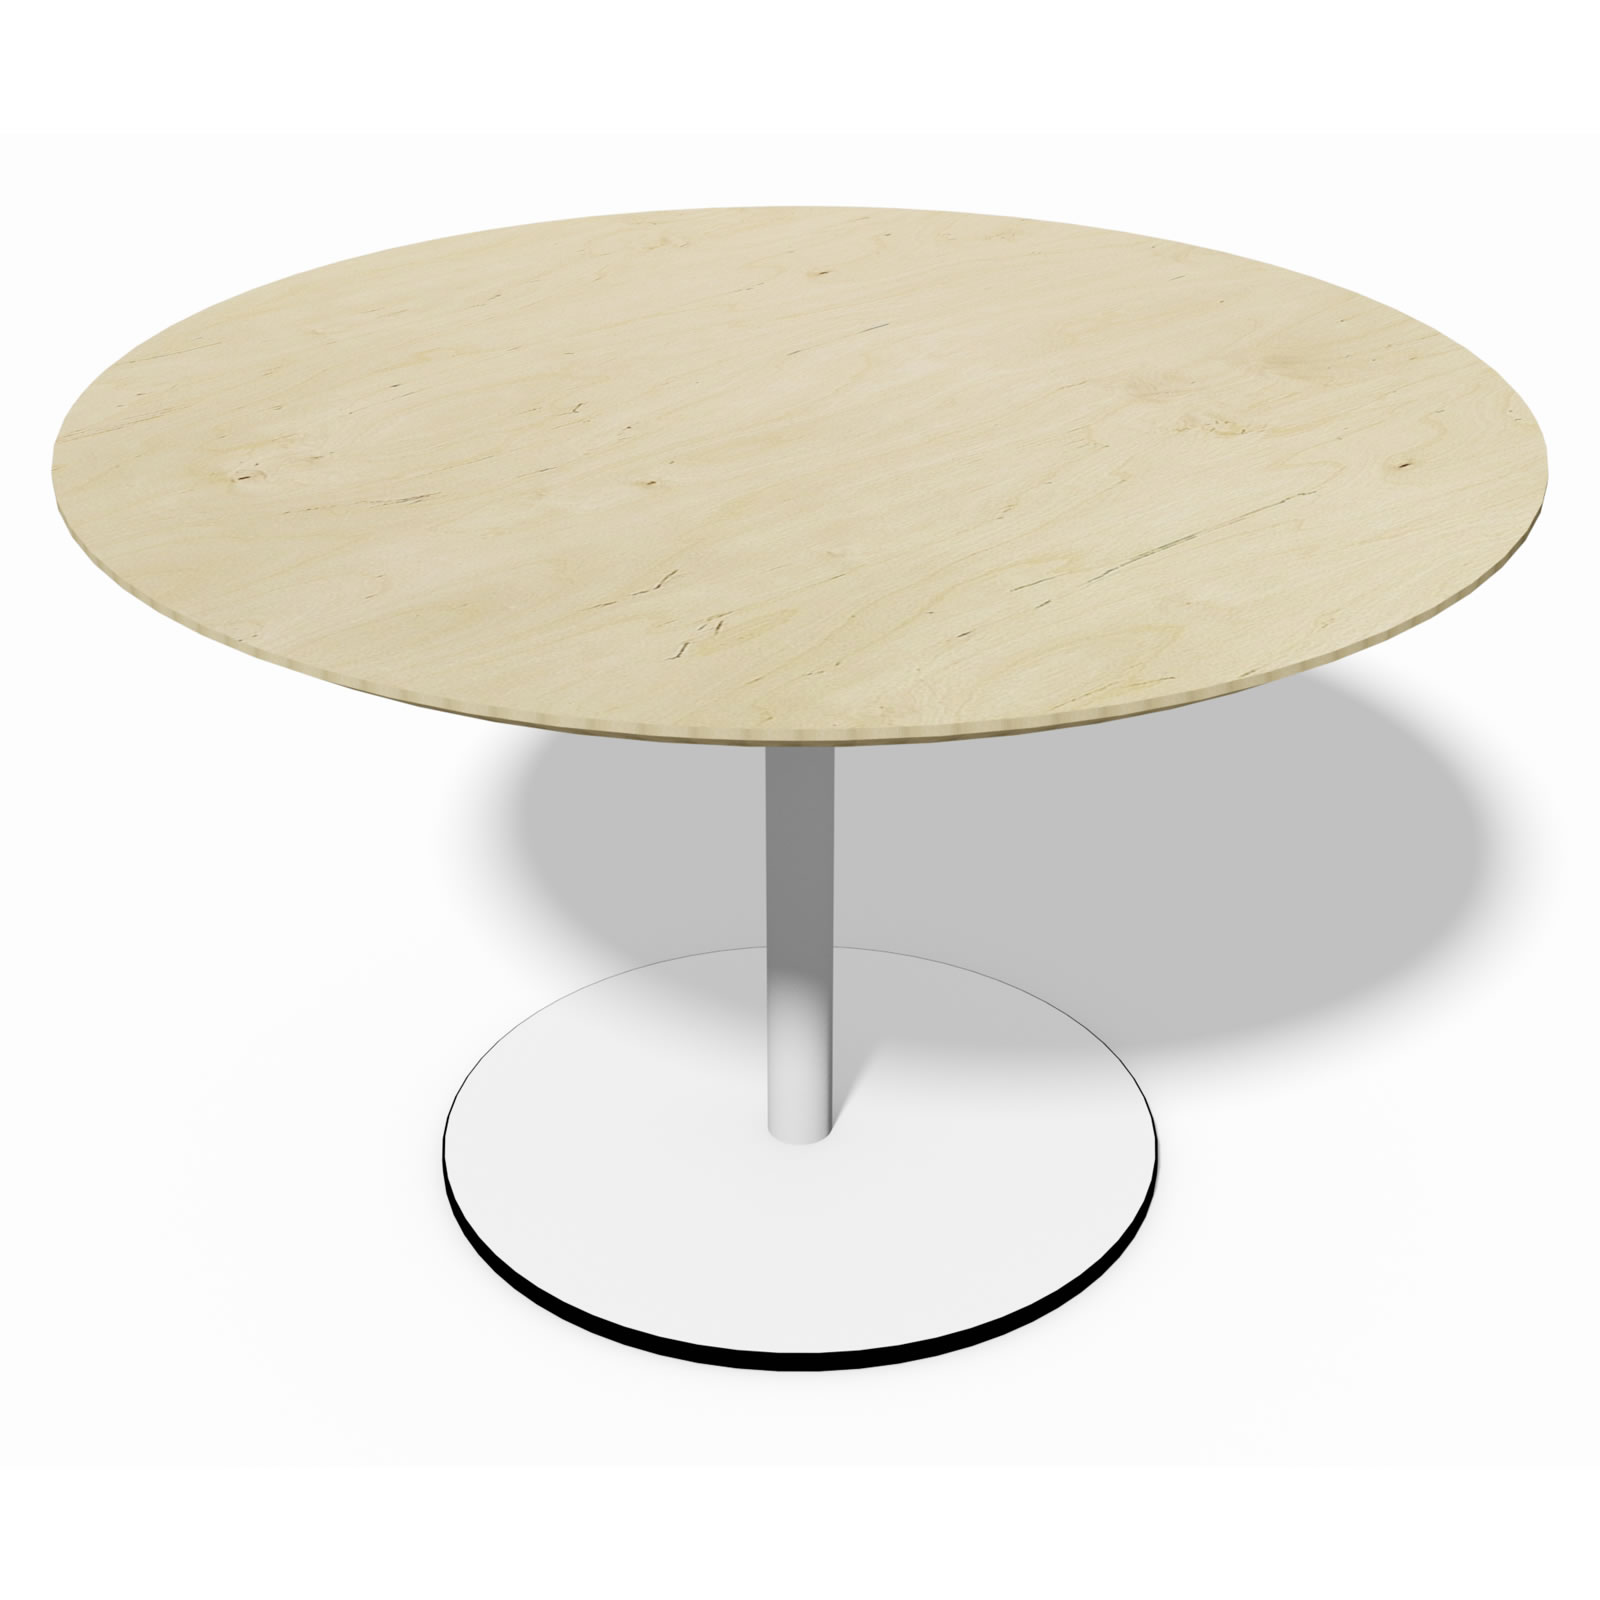 Poise Round Coffee Table